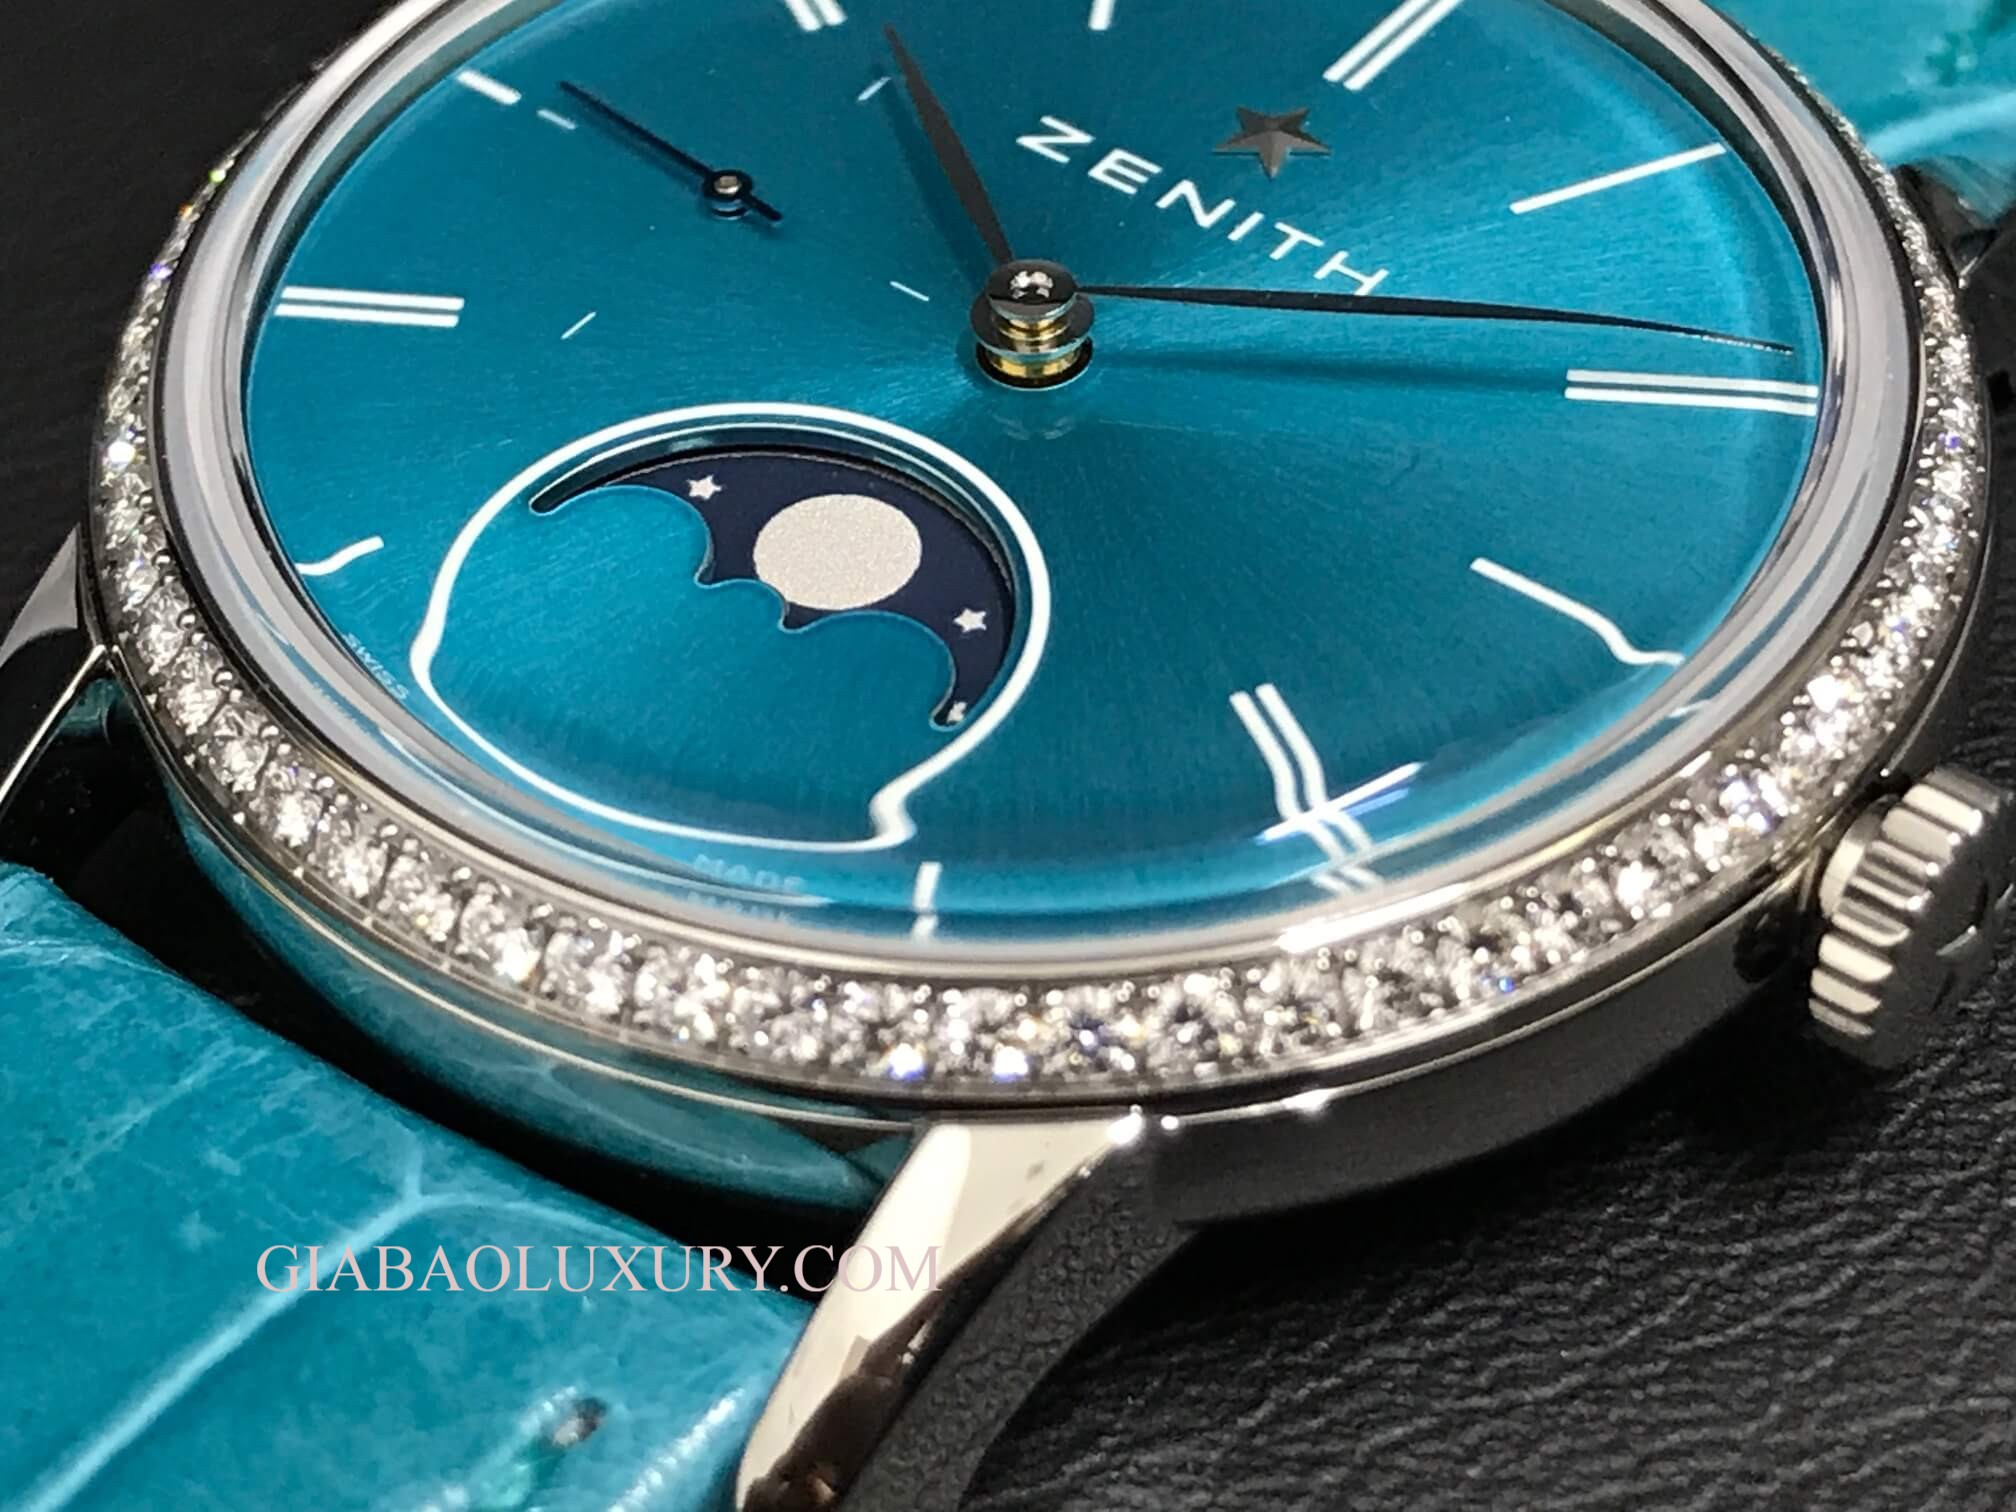 ĐỒNG HỒ ZENITH LADY MOONPHASE 16.2333.692/54.C817